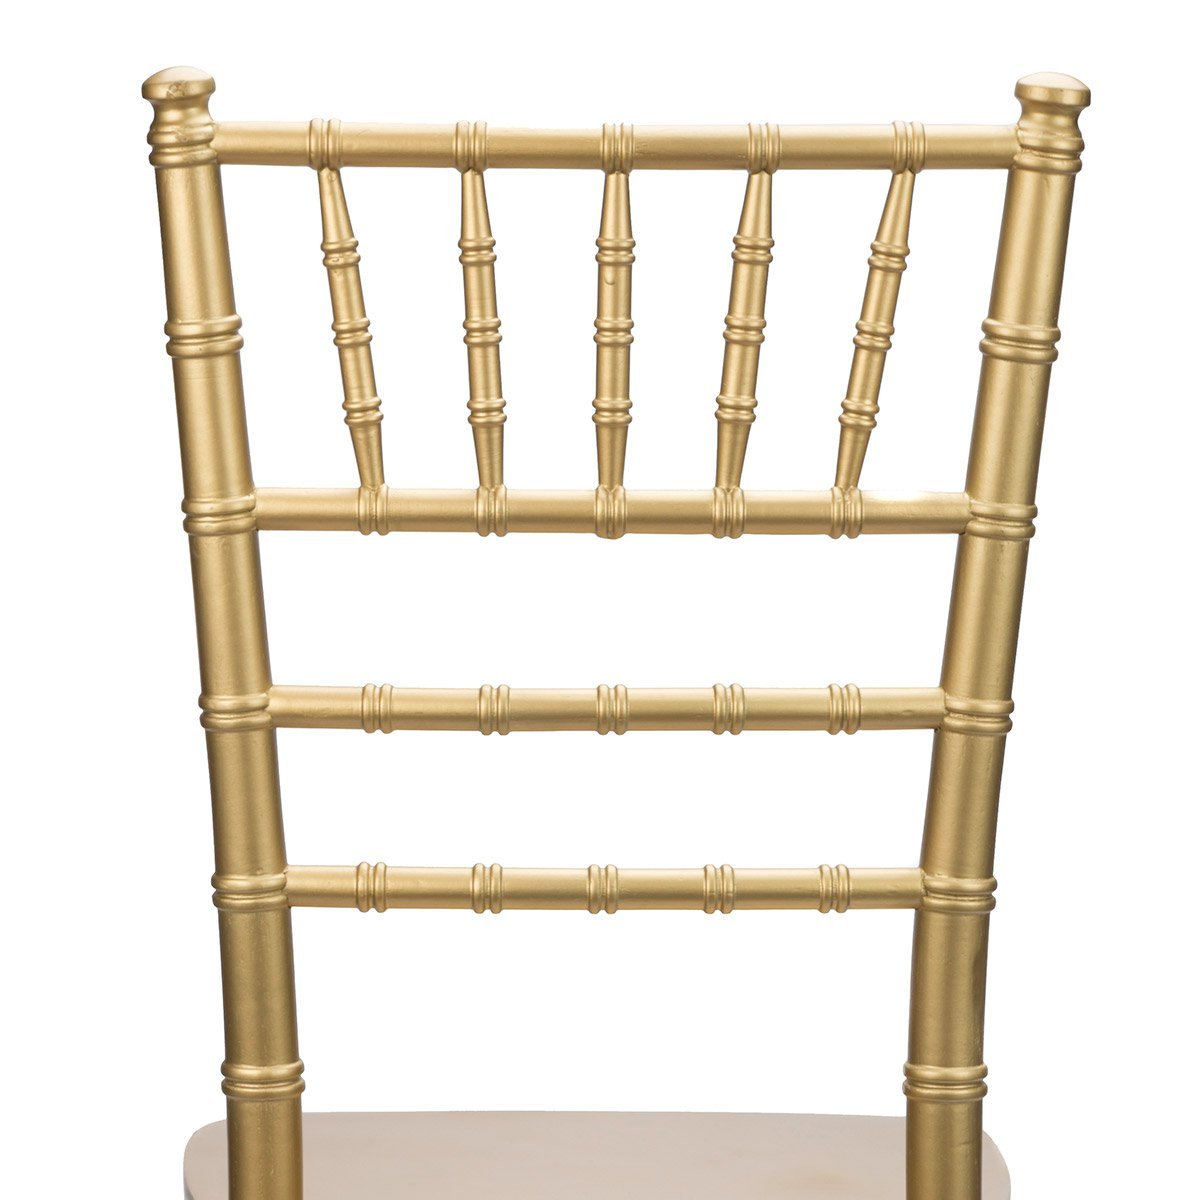 JJ's Party House Rental Chairs Gold Wood Chiavari Chair